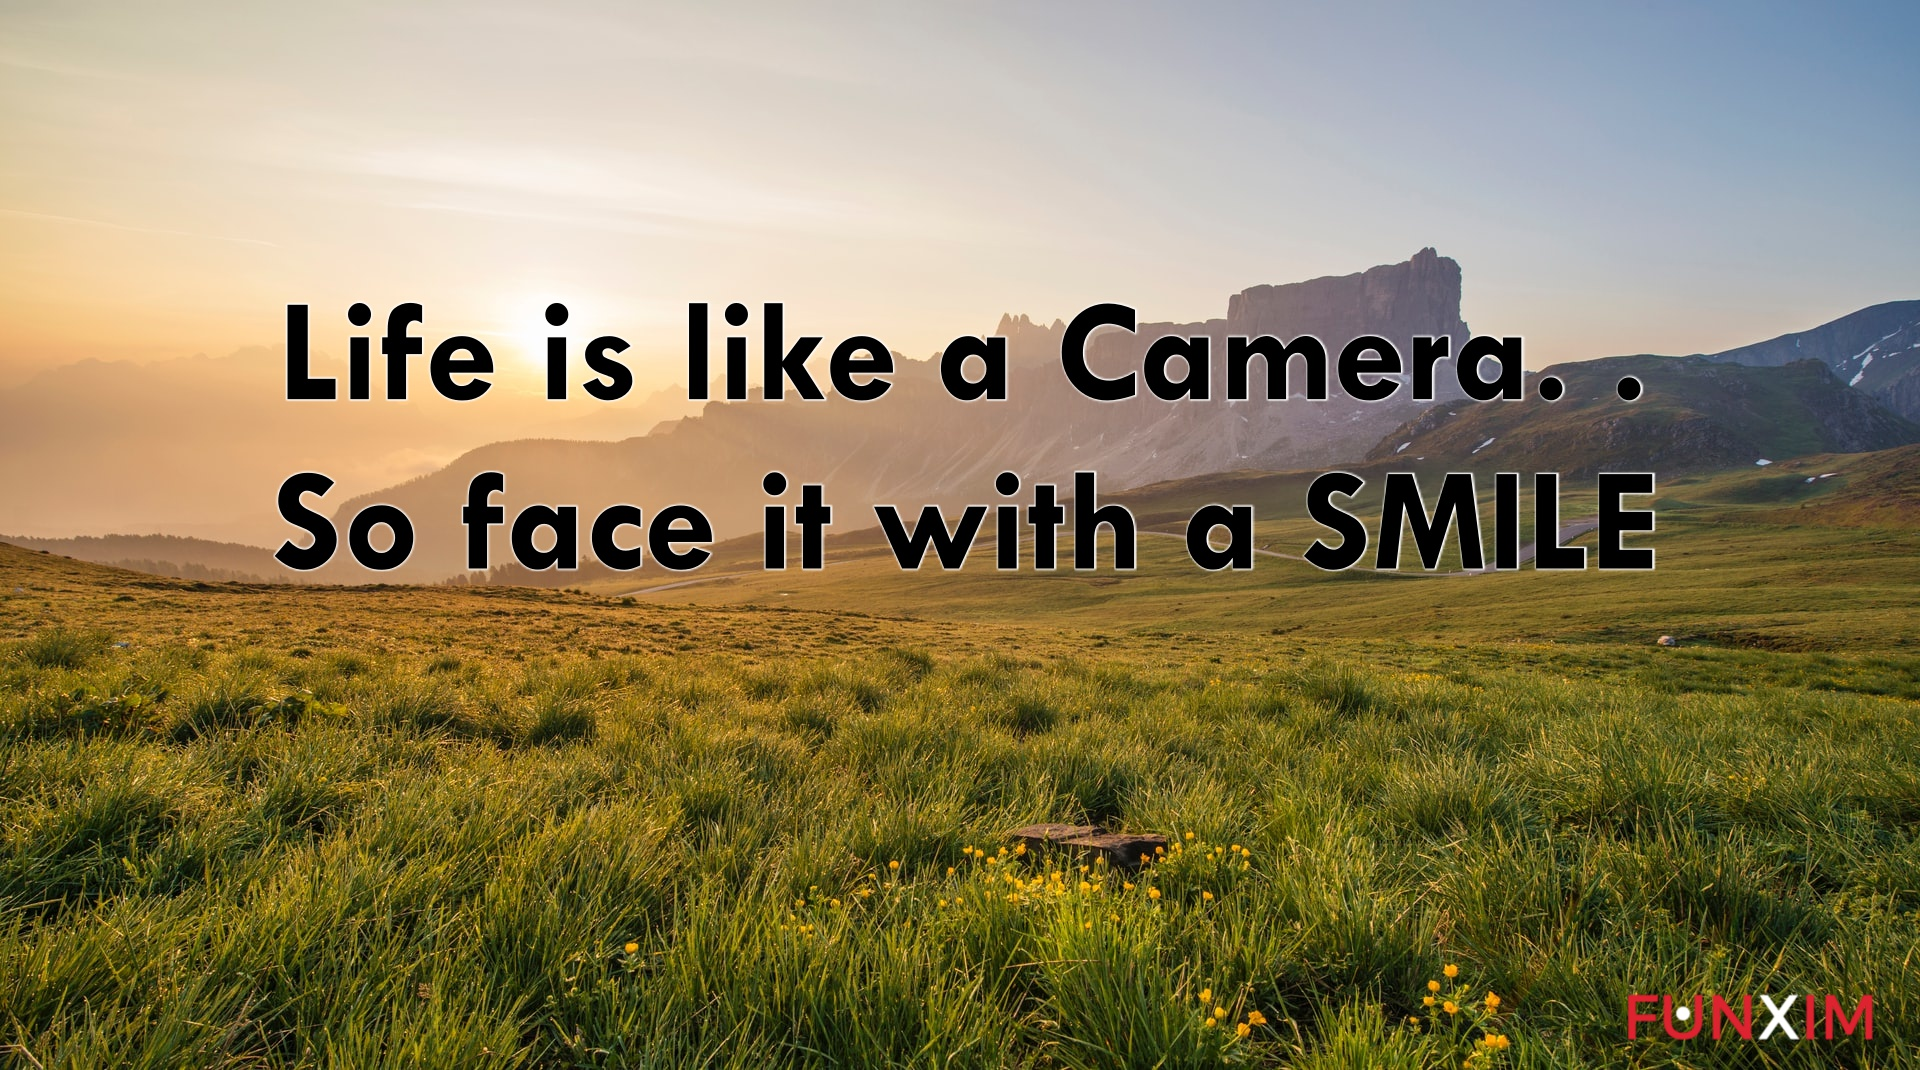 Life is like a camera. . so face it with a SMILE